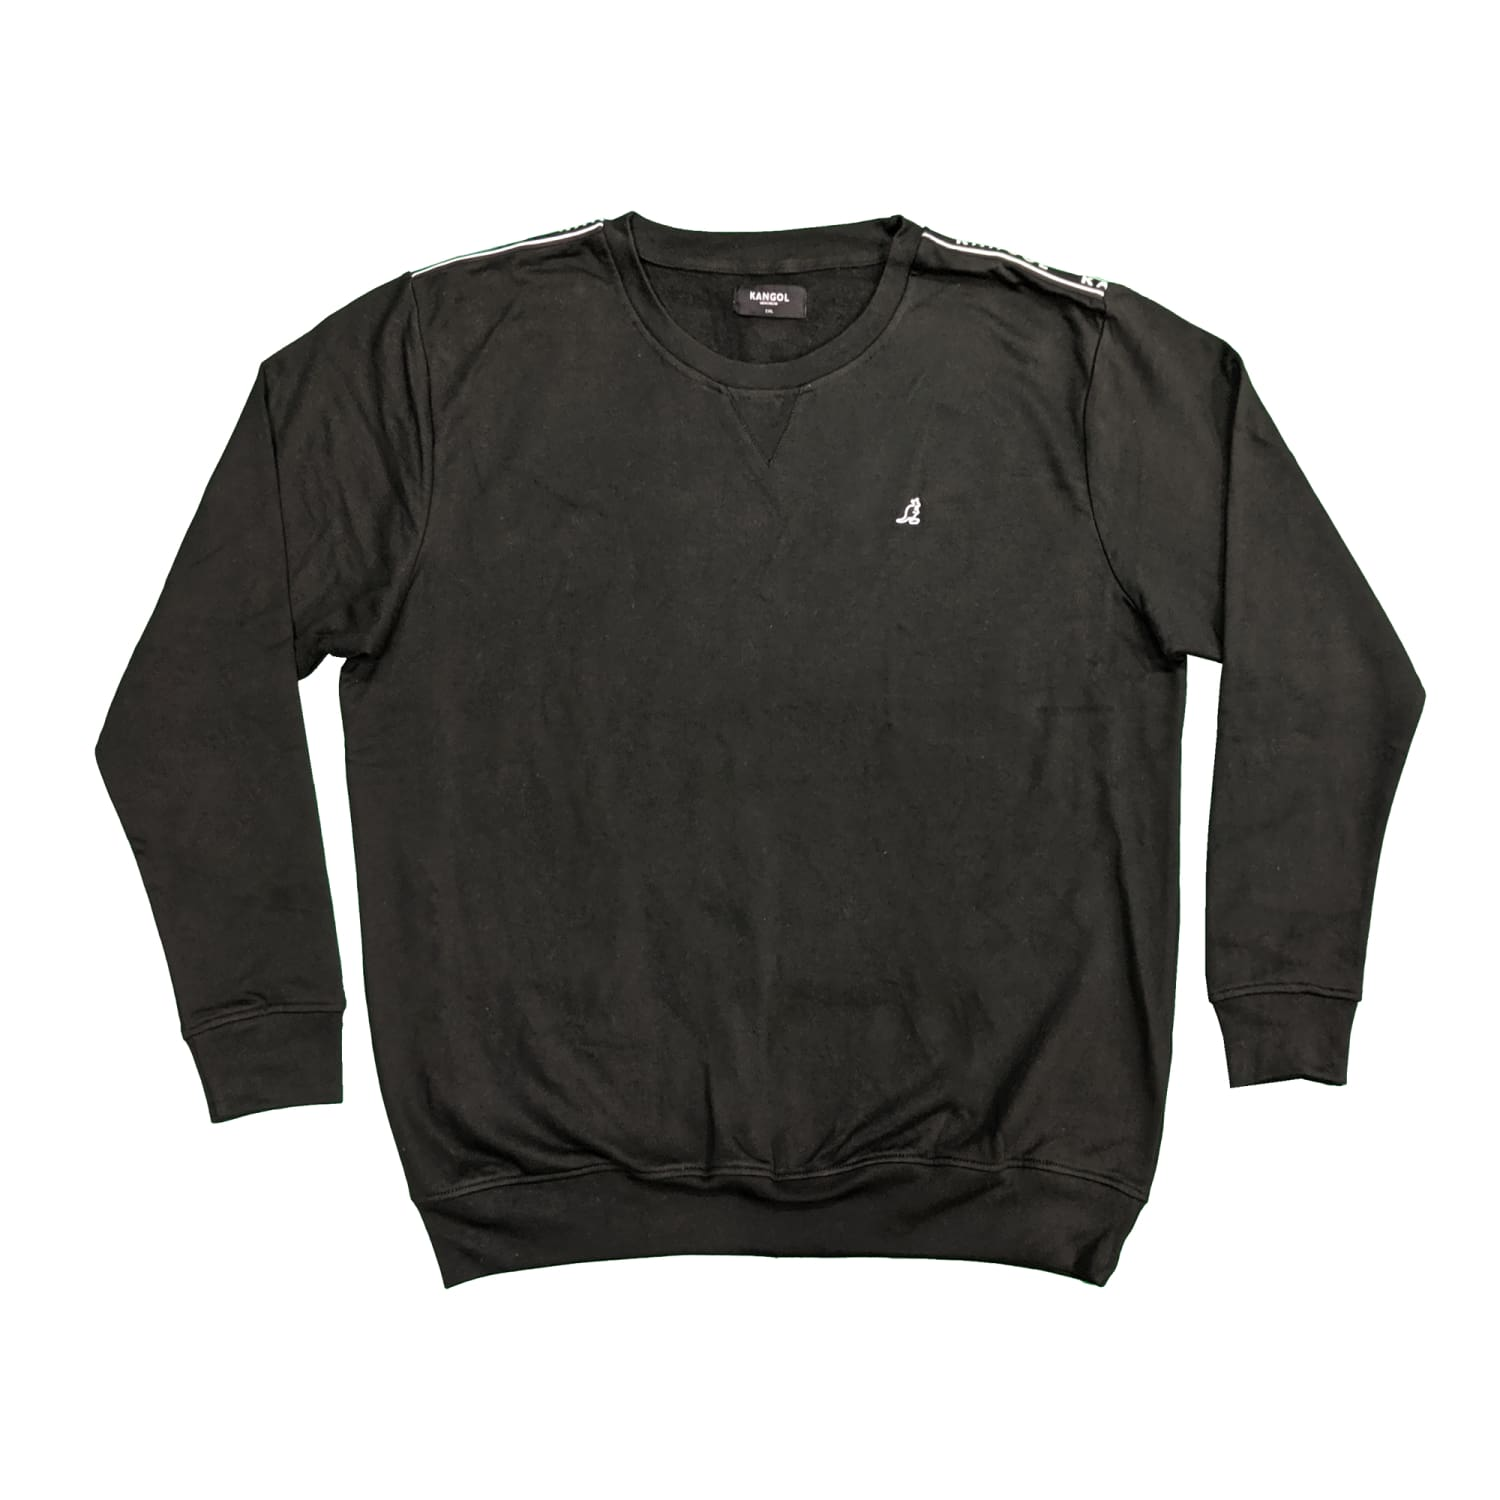 Kangol Sweatshirt - Foray - Black 1